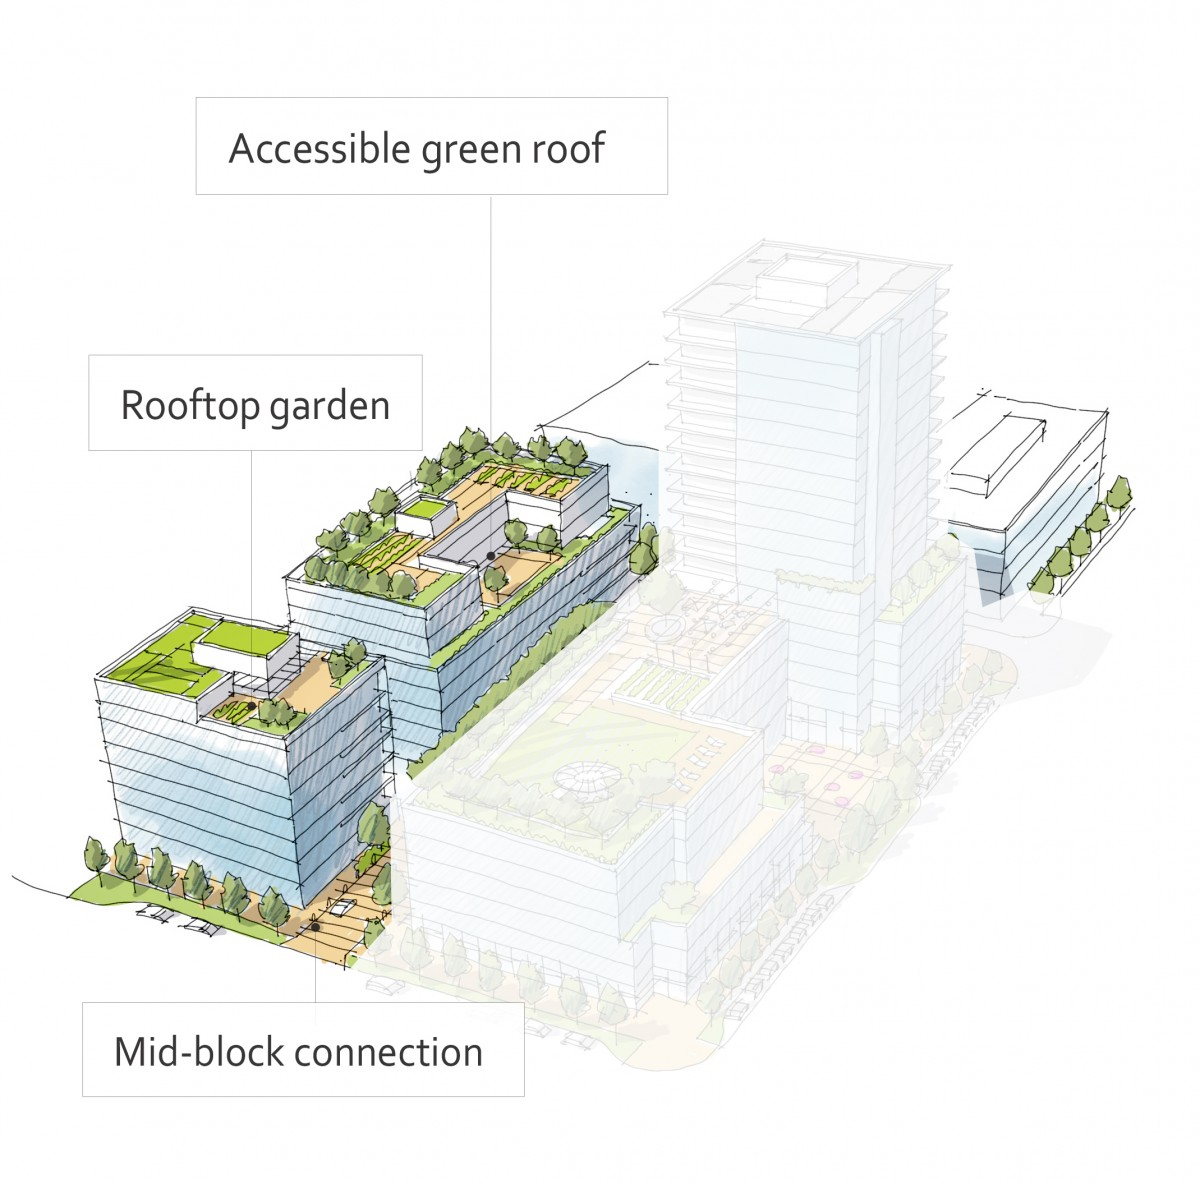 2040 OCP - Form and Character - Figure 38 - Examples of outdoor amenity space in a mid-rise building